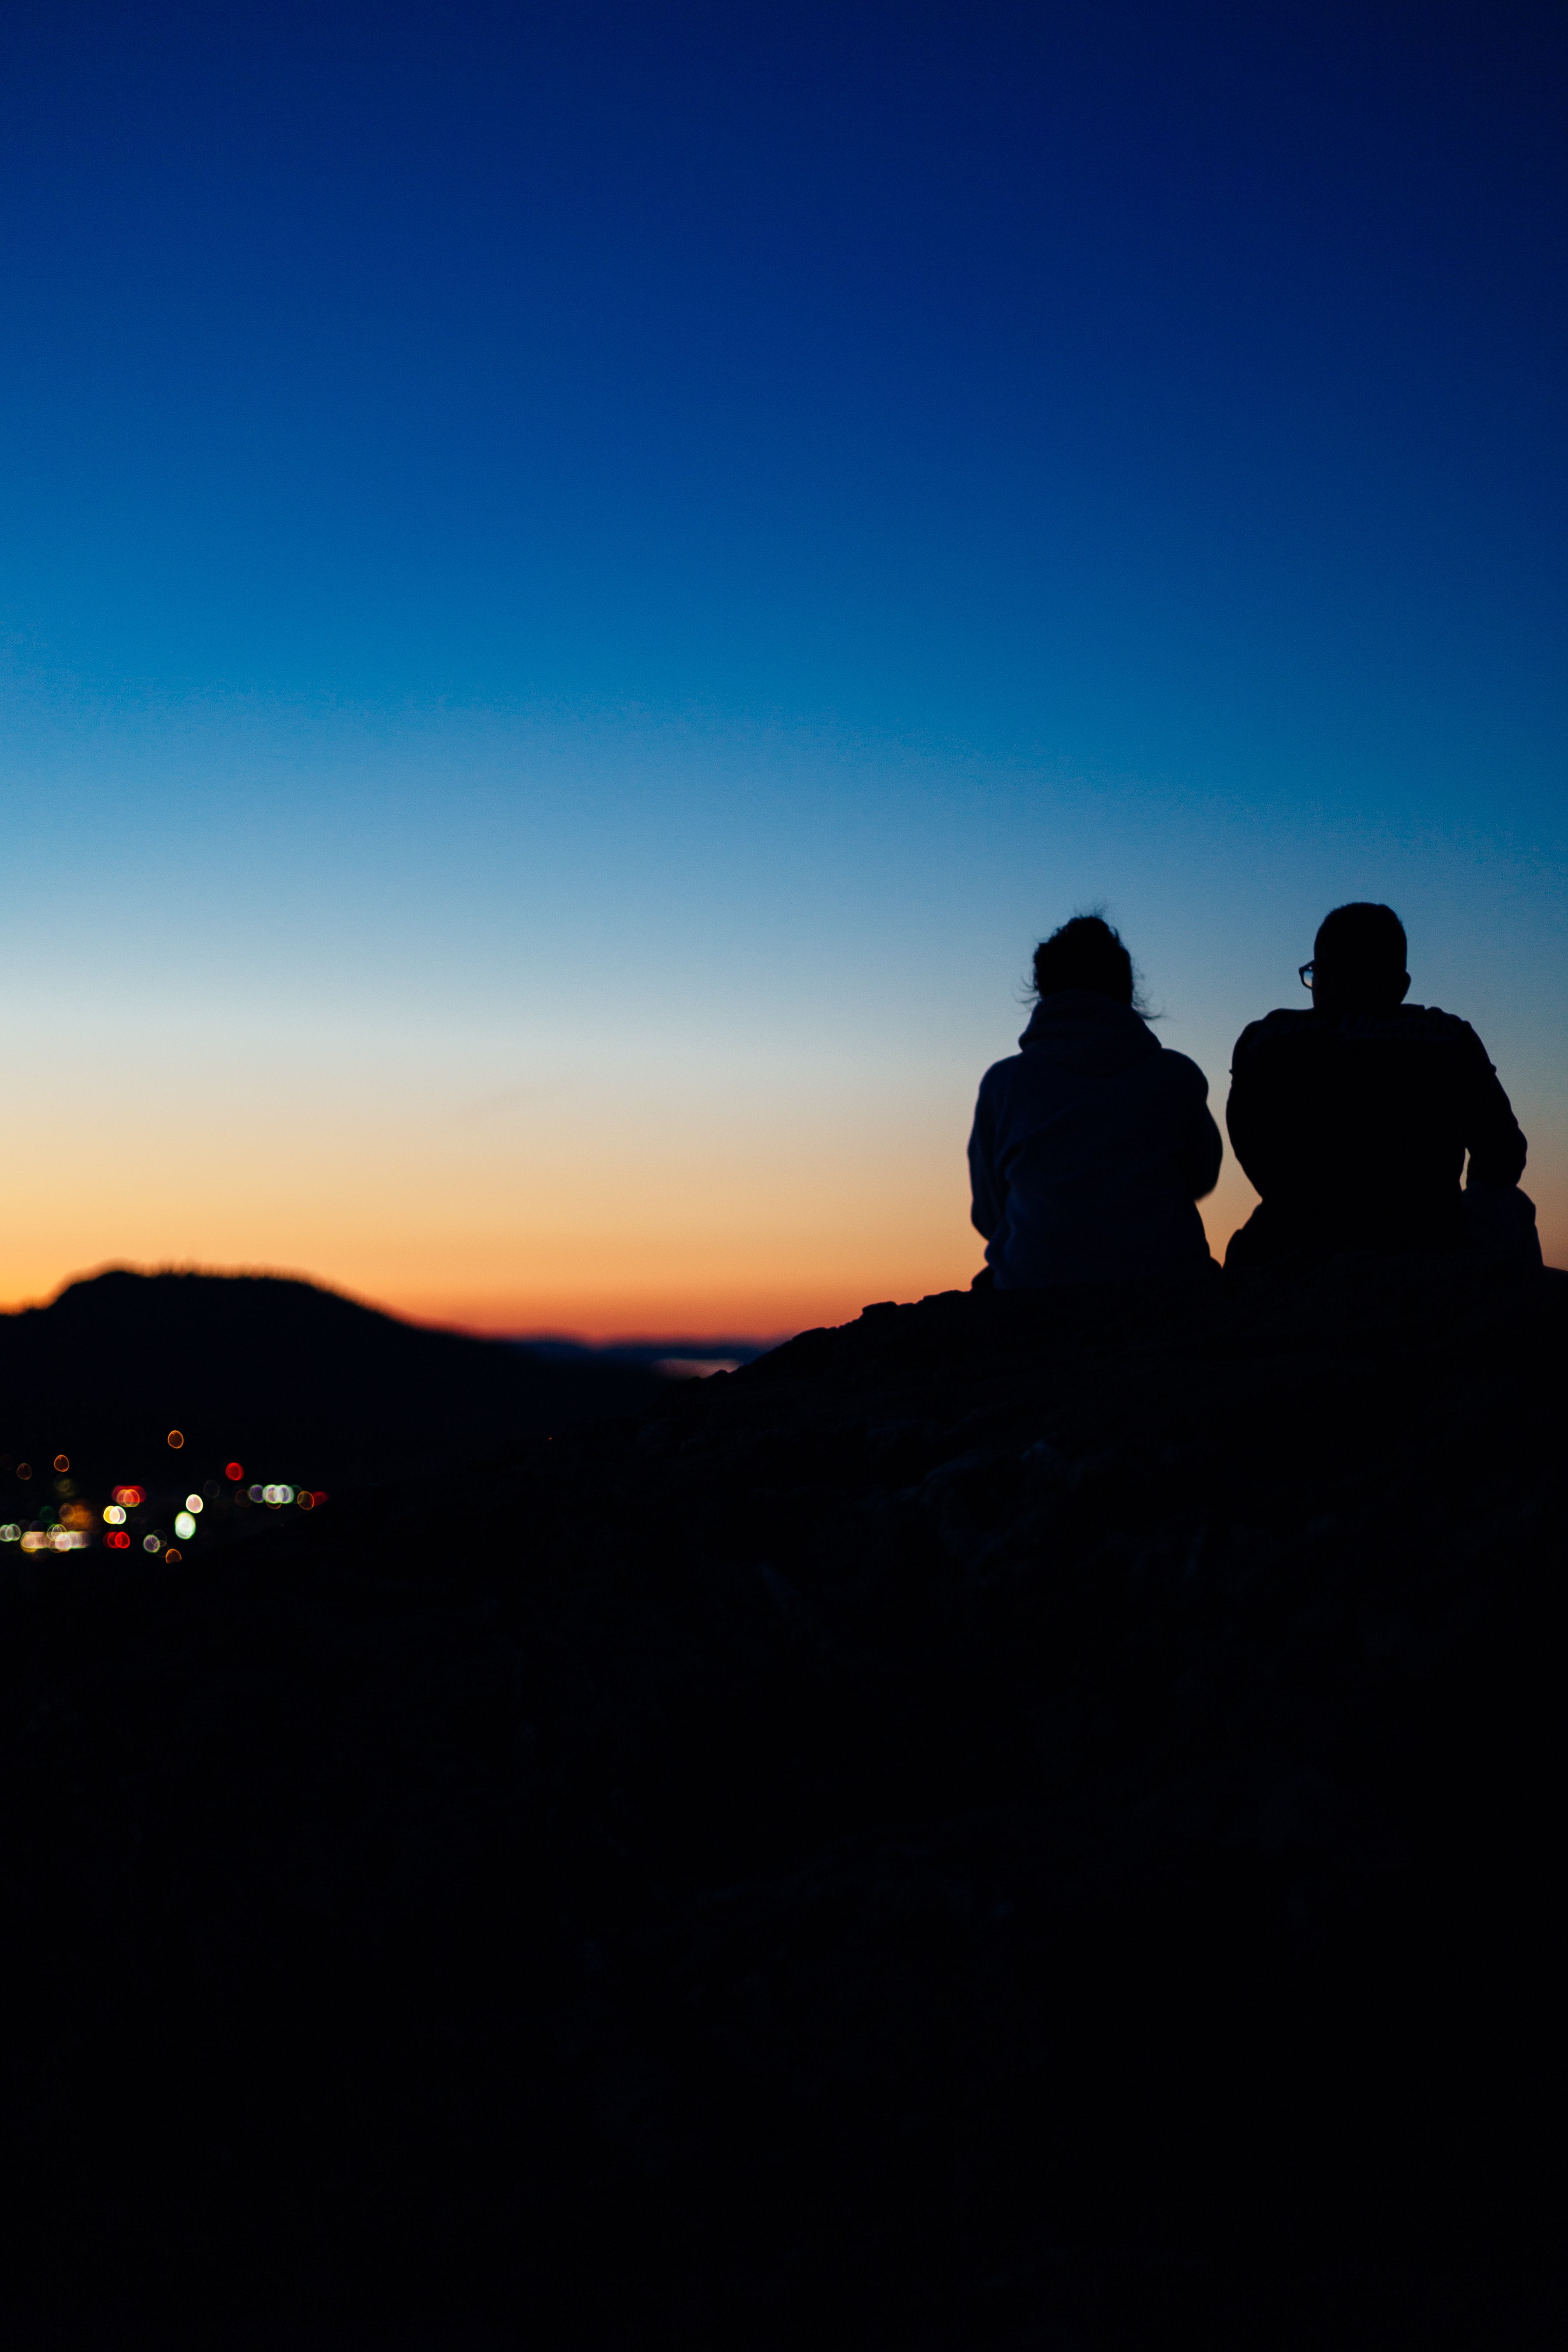 two silhouette people sitting during sunset